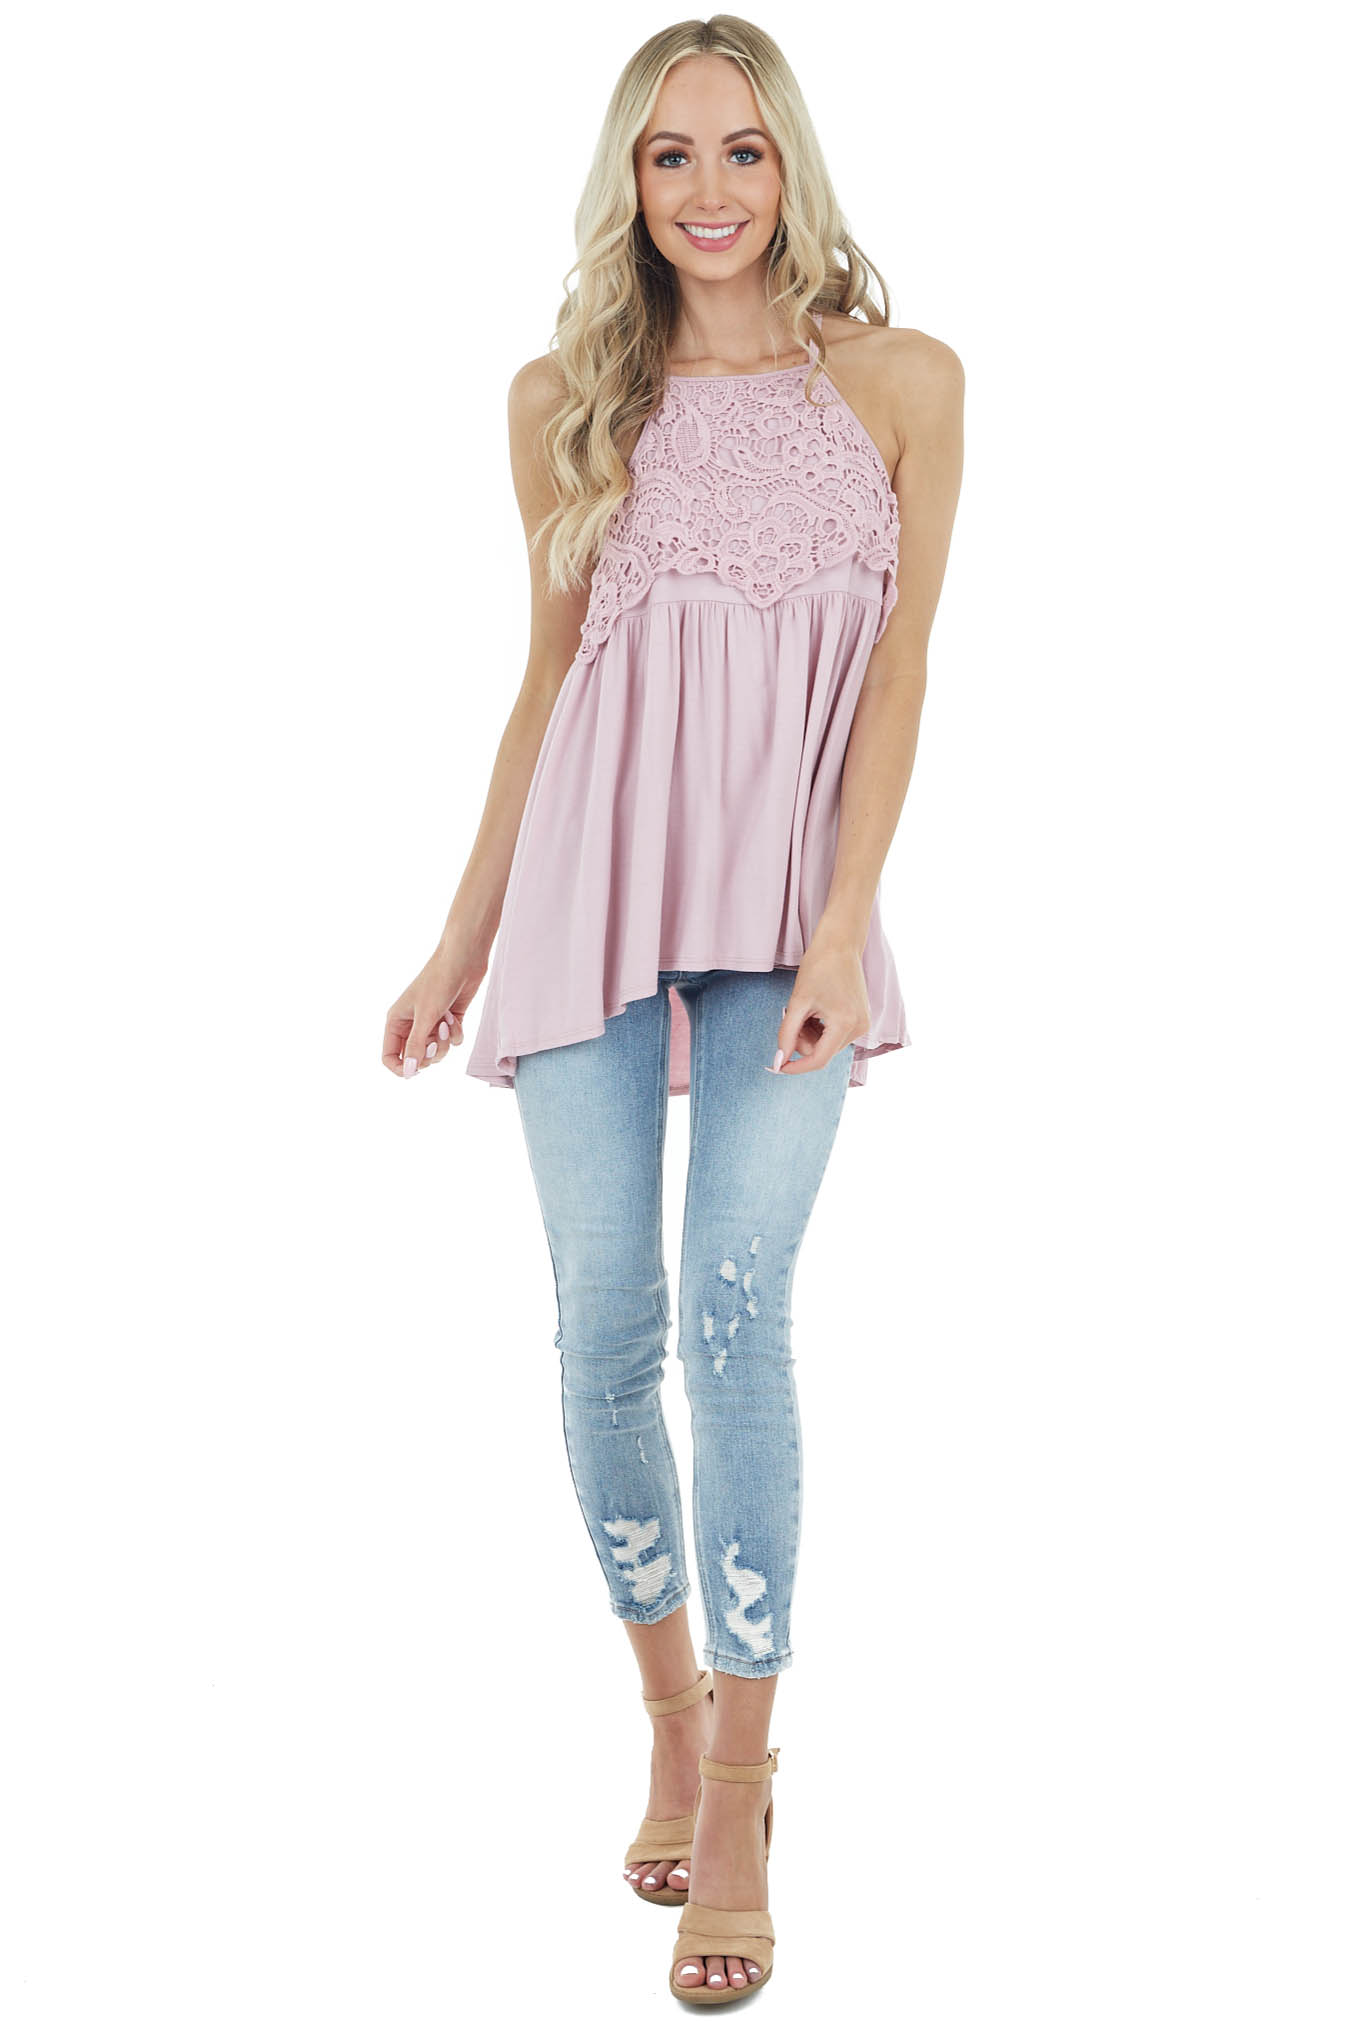 Blush Rose Sleeveless Top with Crochet Lace Detail